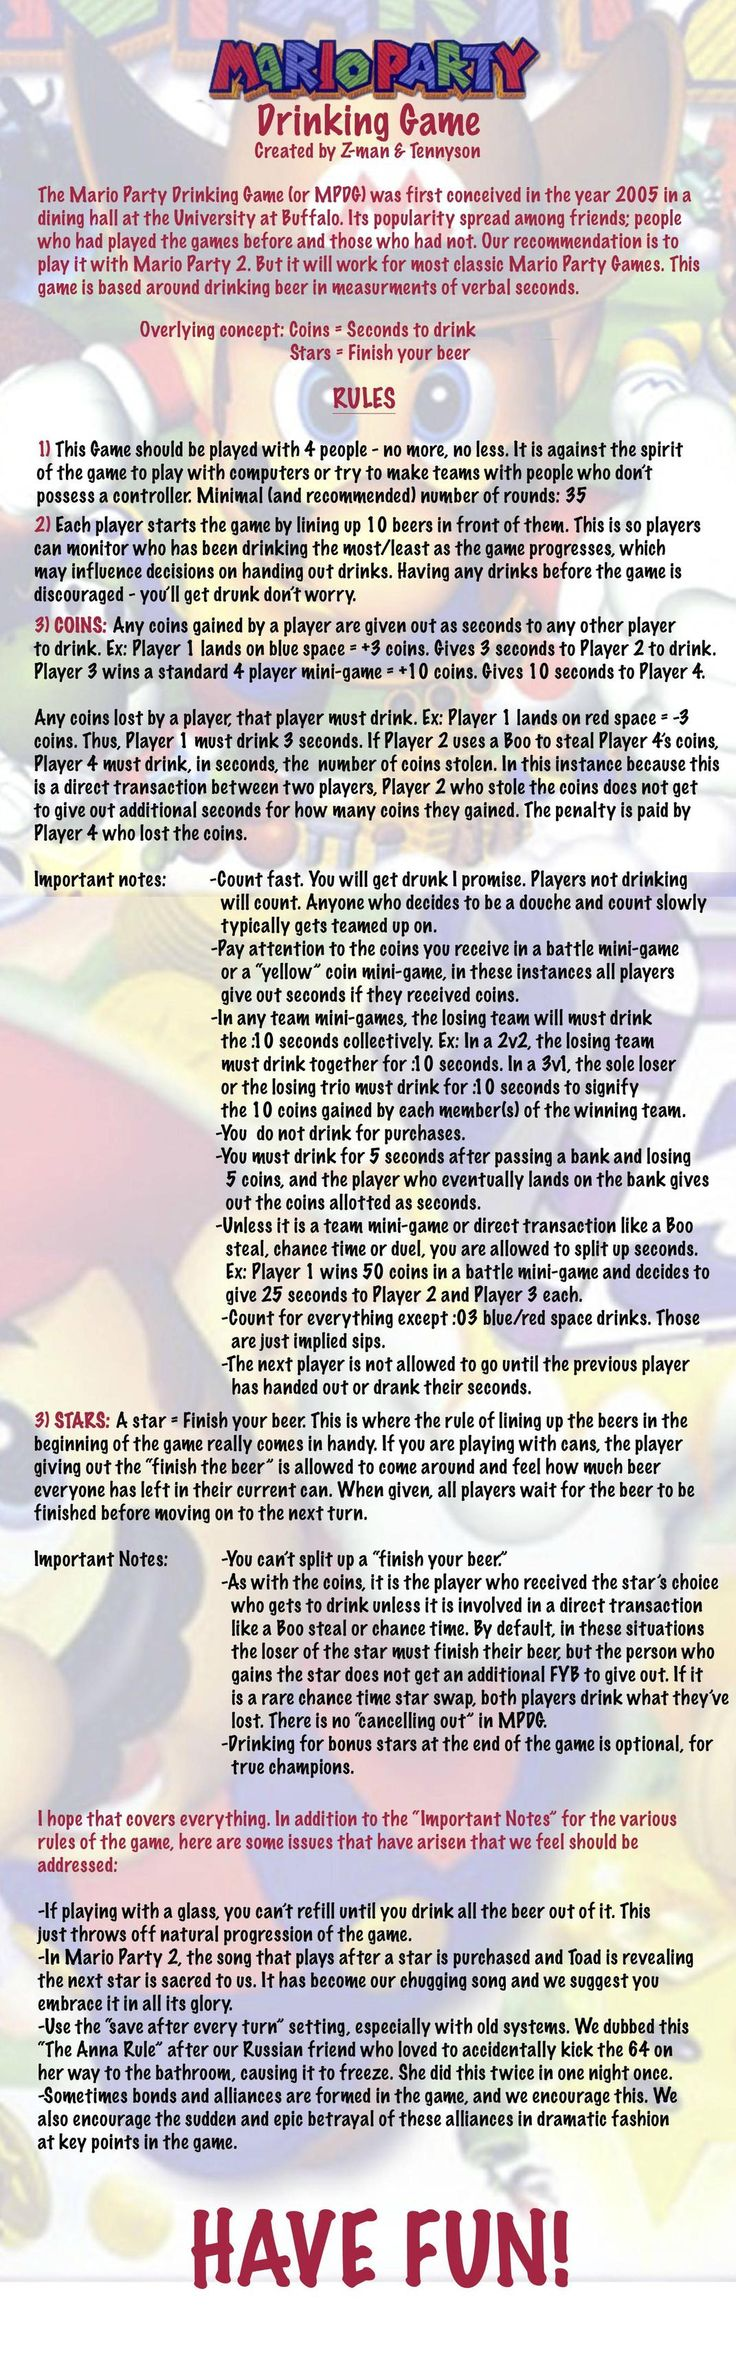 It's about time I shared this with the world...The Mario Party Drinking Game - Imgur